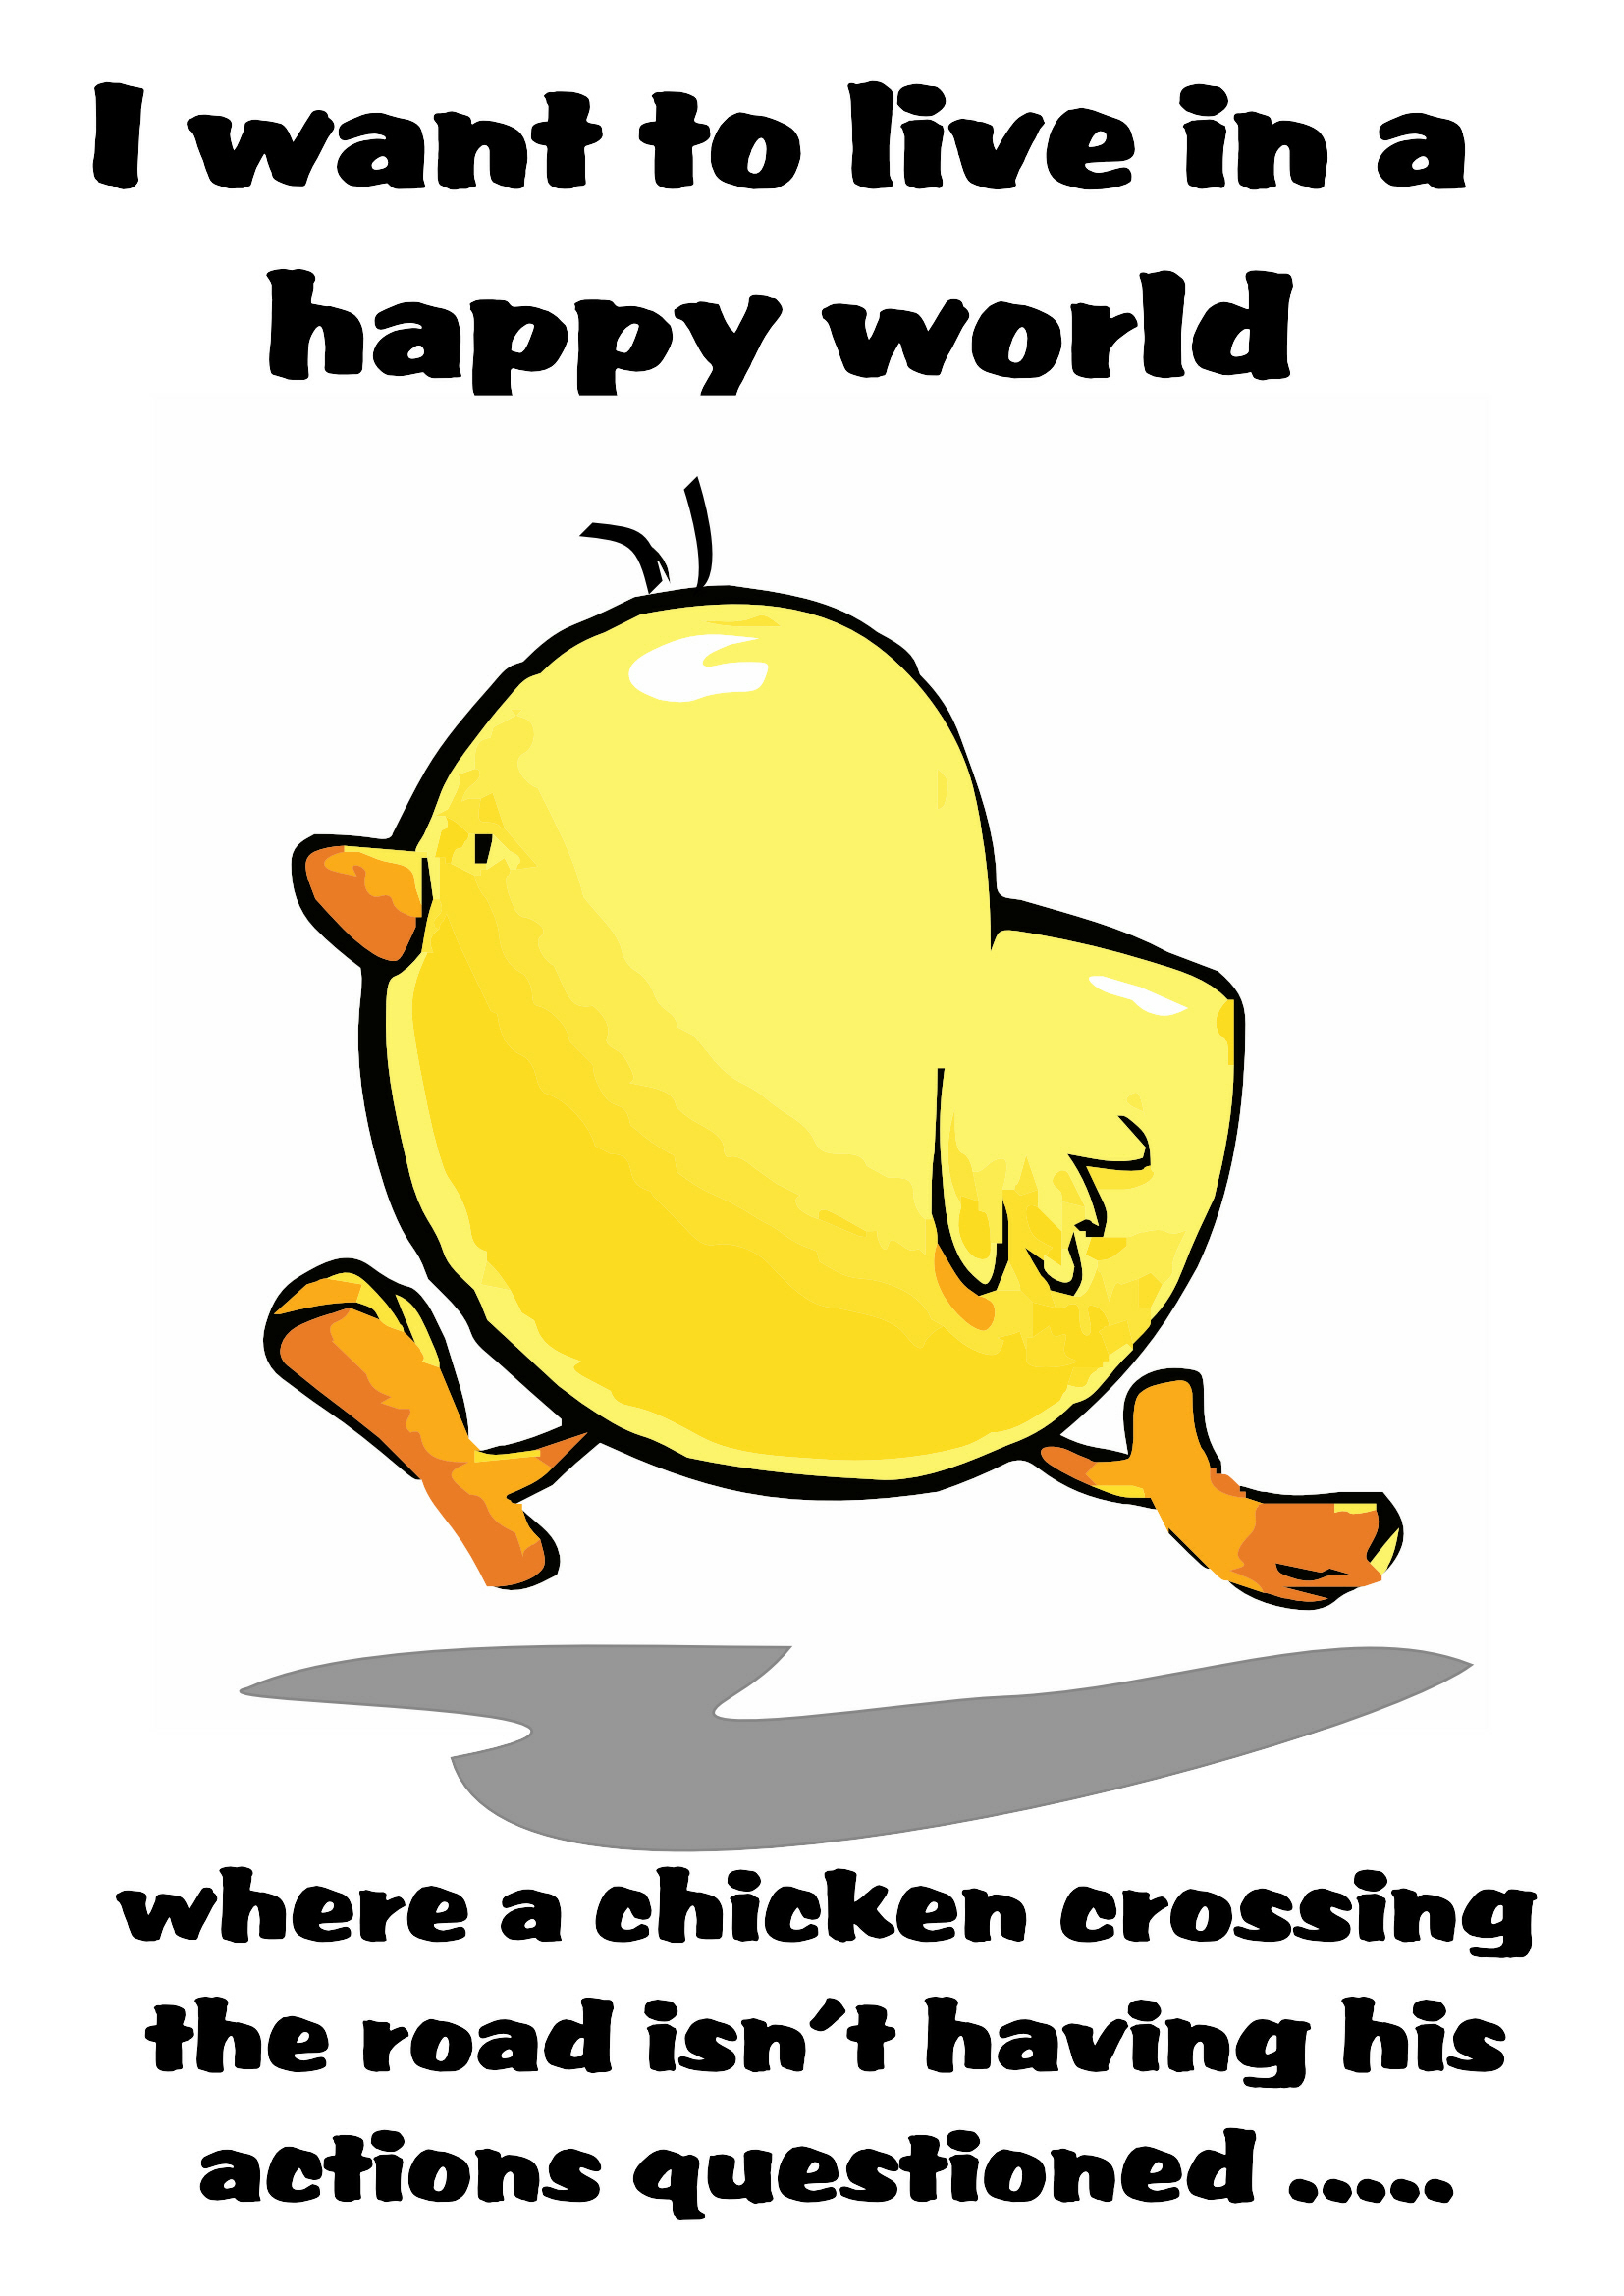 I want to live in a happy world where a chicken crossing the road isn't having his actions questioned